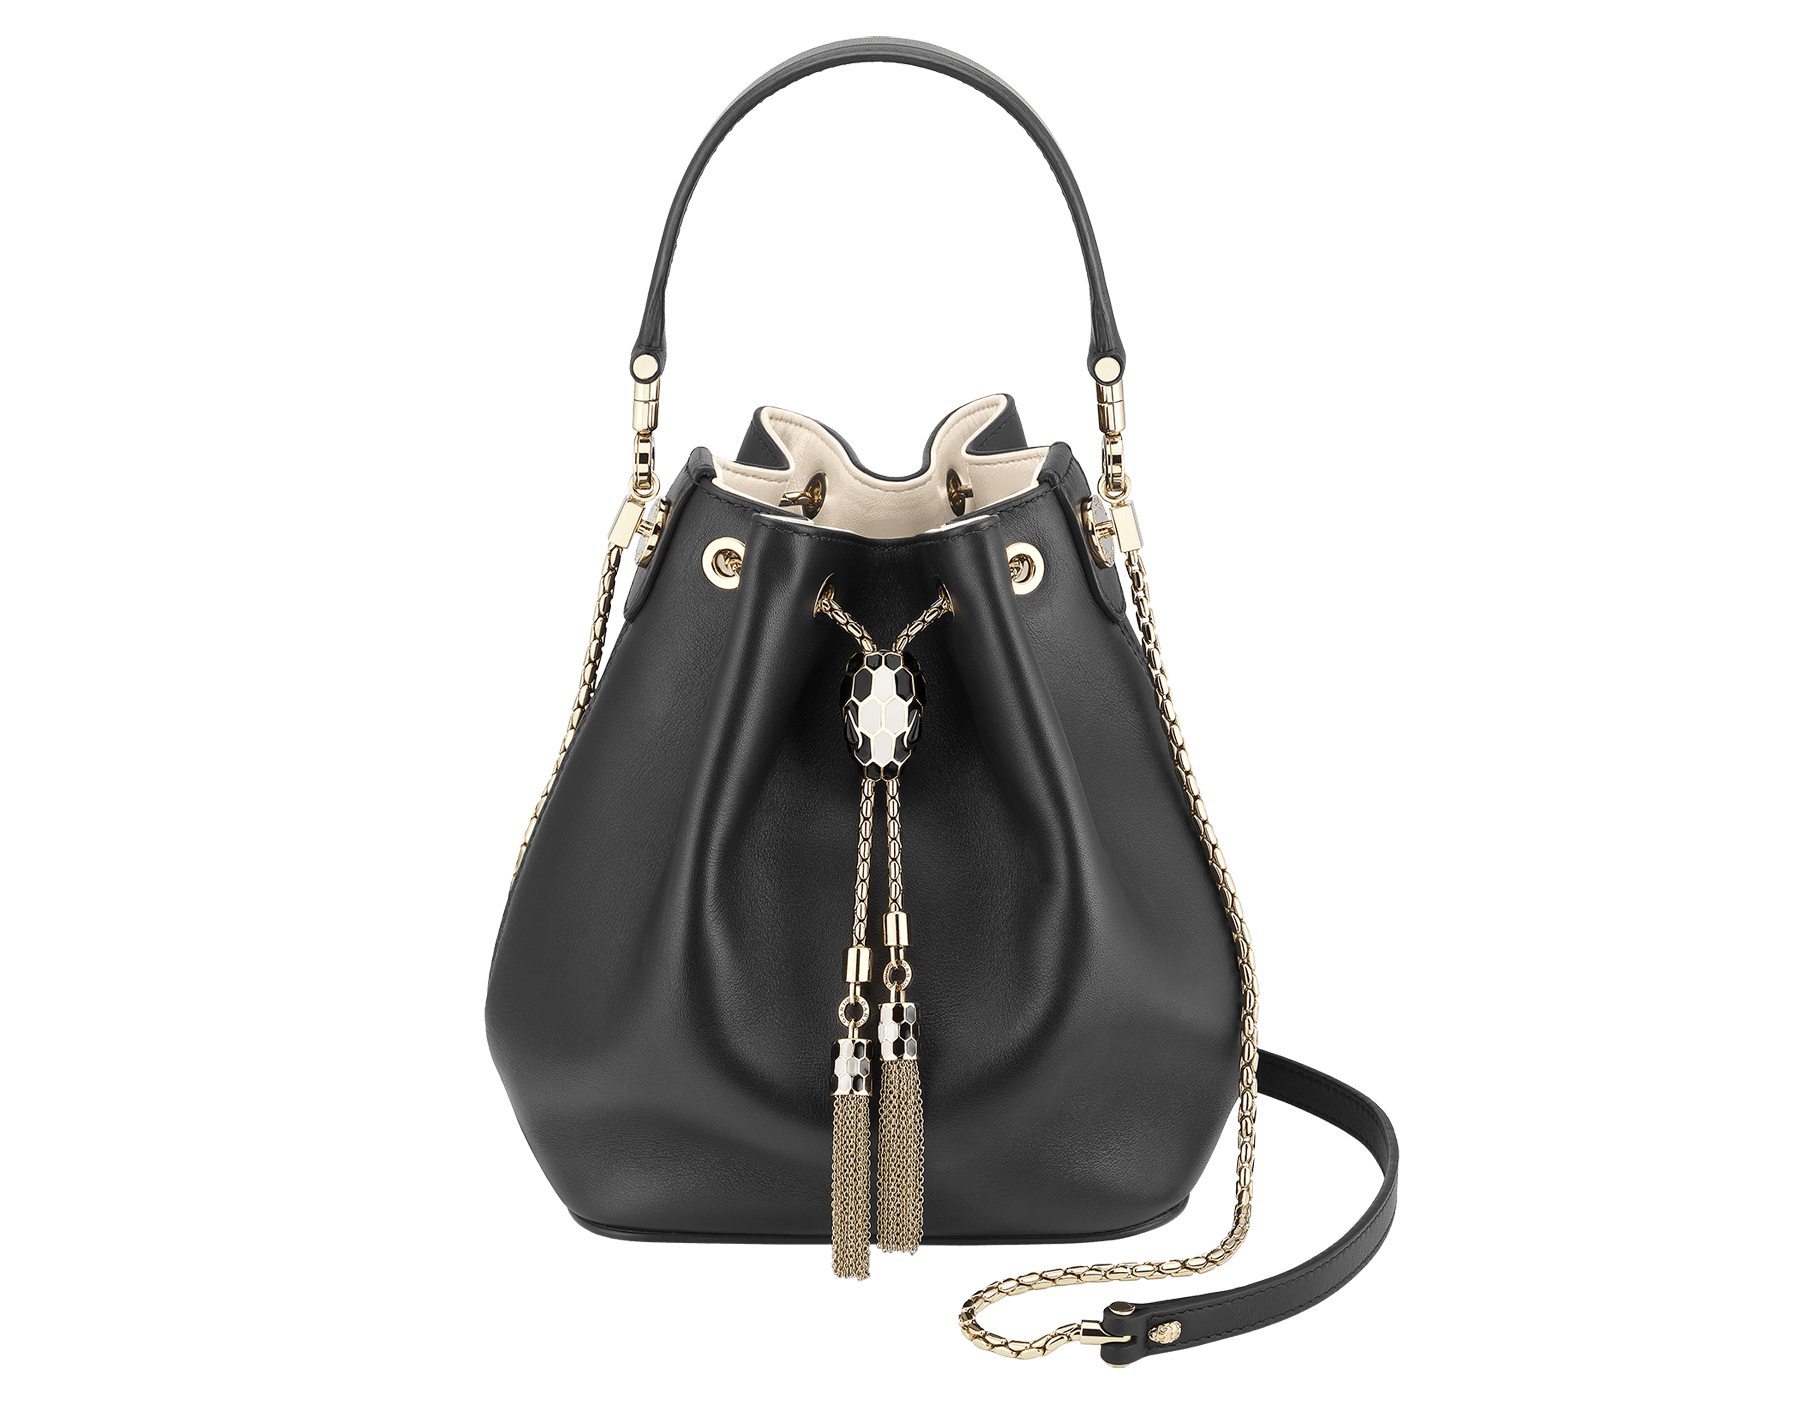 Bucket Serpenti Forever in black smooth calf leather and milky opal nappa internal lining. Hardware in light gold plated brass and snakehead closure in black and white enamel, with eyes in black onyx. 934-CLb image 1